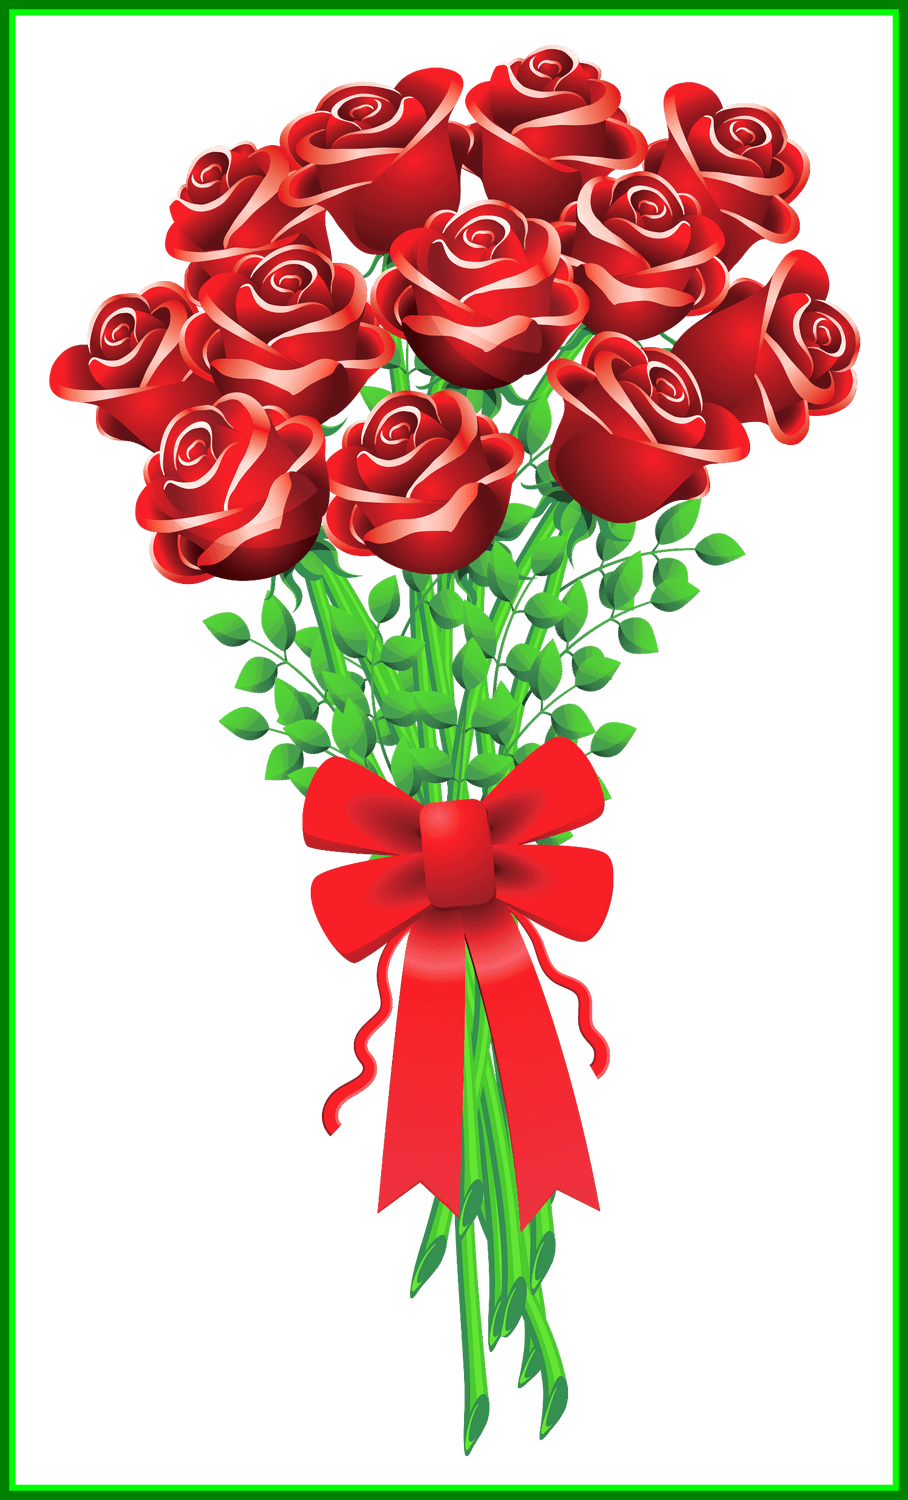 Flower bouquet images clipart free stock Astonishing Valentines Day Roses Clipart Rozy Clip Art And Decoupage ... free stock